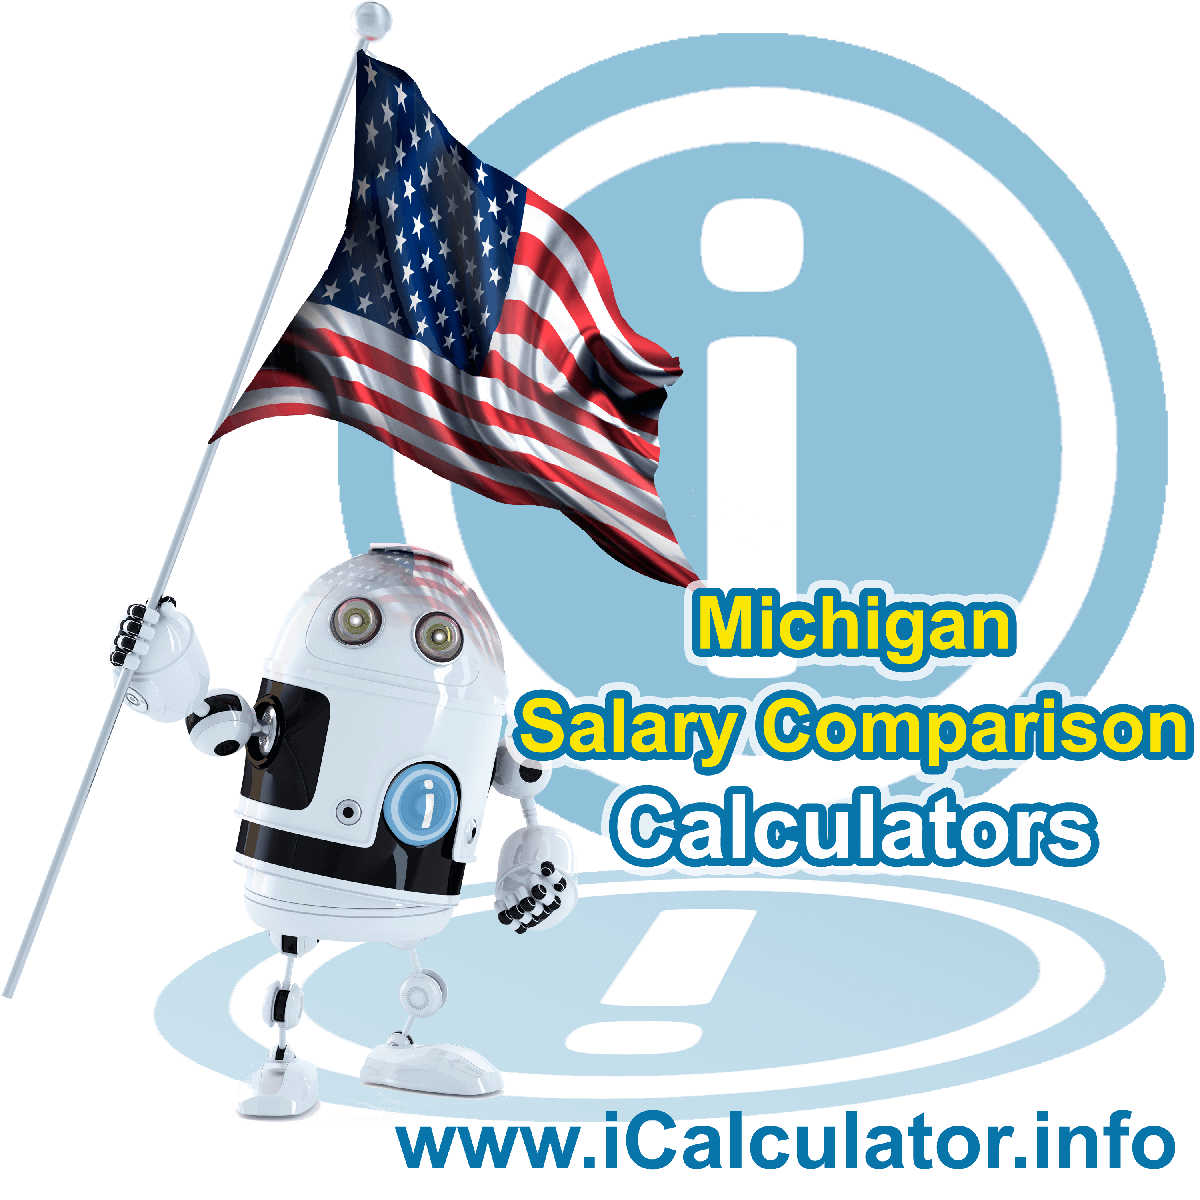 Michigan Salary Comparison Calculator 2020 | iCalculator | The Michigan Salary Comparison Calculator allows you to quickly calculate and compare upto 6 salaries in Michigan or between other states for the 2020 tax year and historical tax years. Its an excellent tool for jobseekers, pay raise comparison and comparison of salaries between different US States